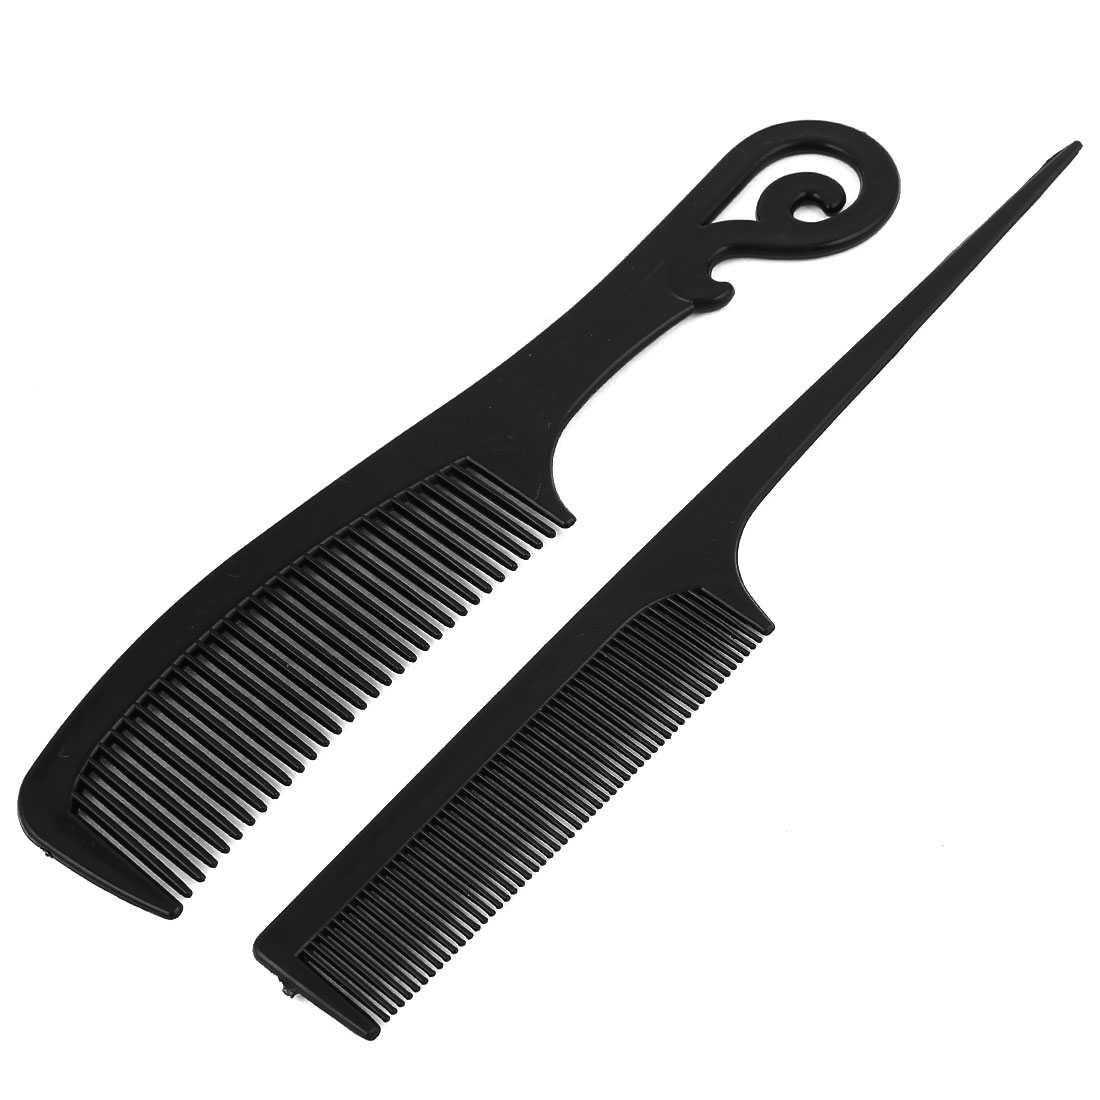 2 in 1 Portable Black Plastic Anti-Static Heat Resistant Straight Handgrip Hair Comb